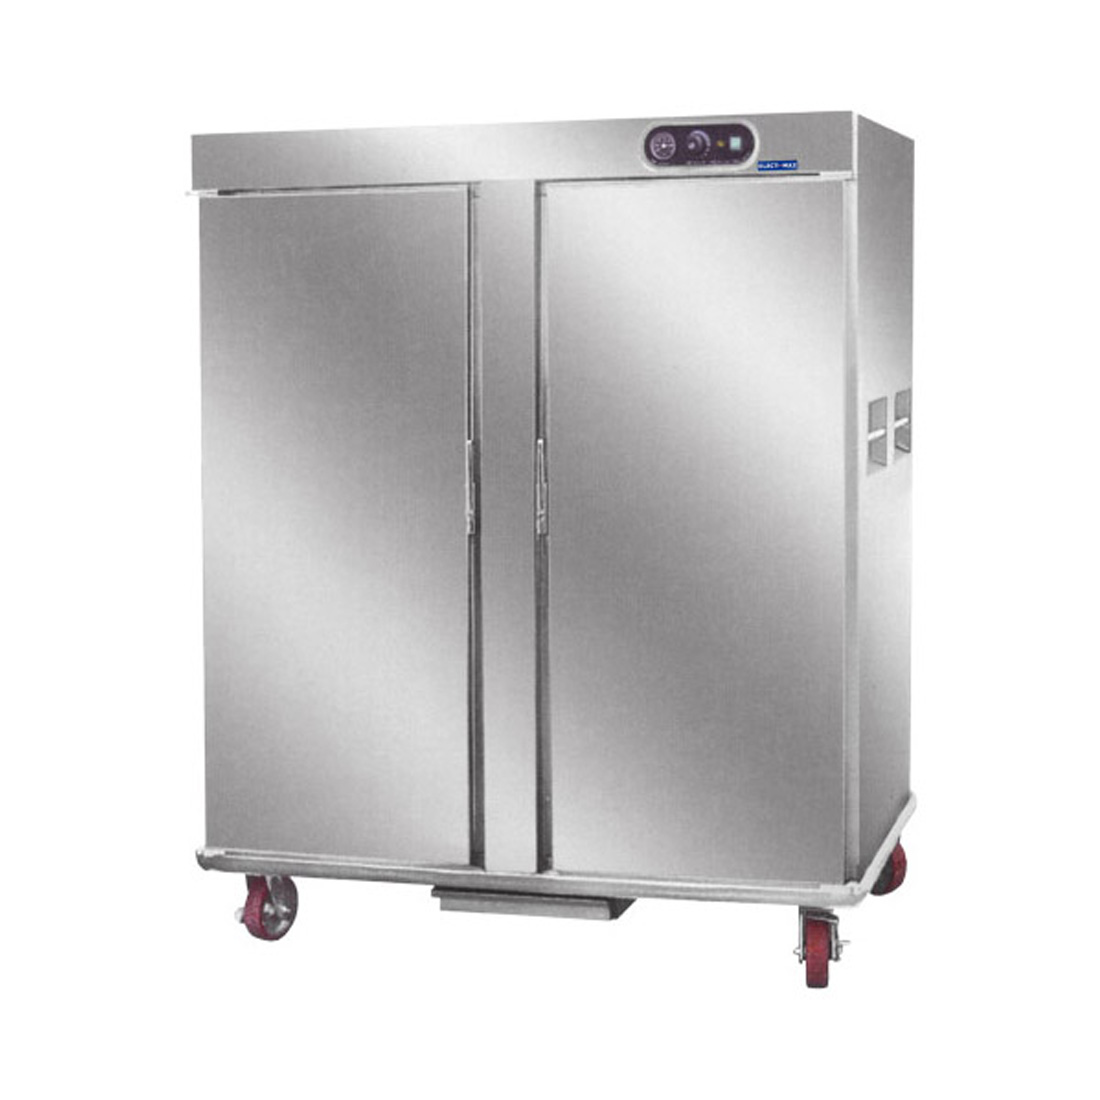 DH-22-21D Double Warming Cart